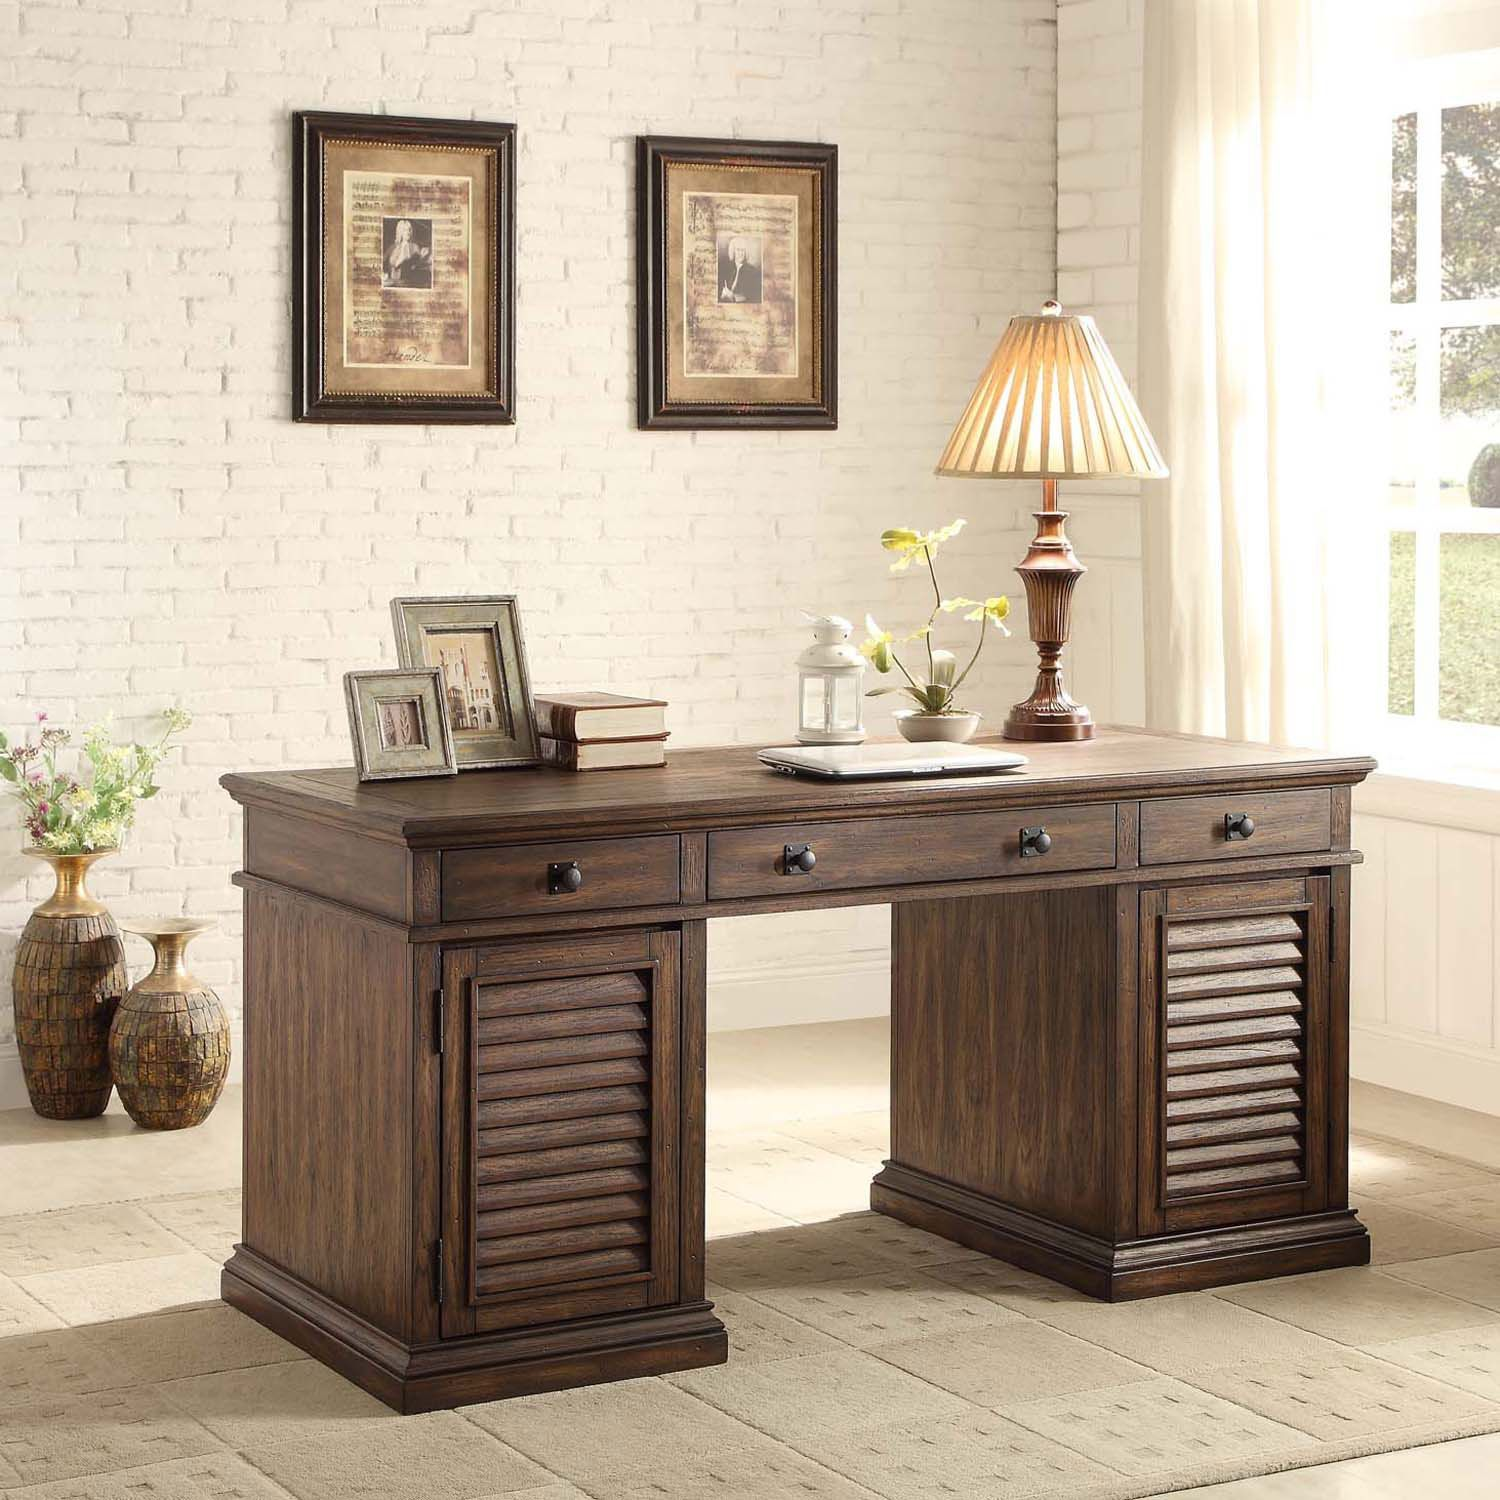 Enchanting Ihop Home Office Pictures - Home Decorating Inspiration ...